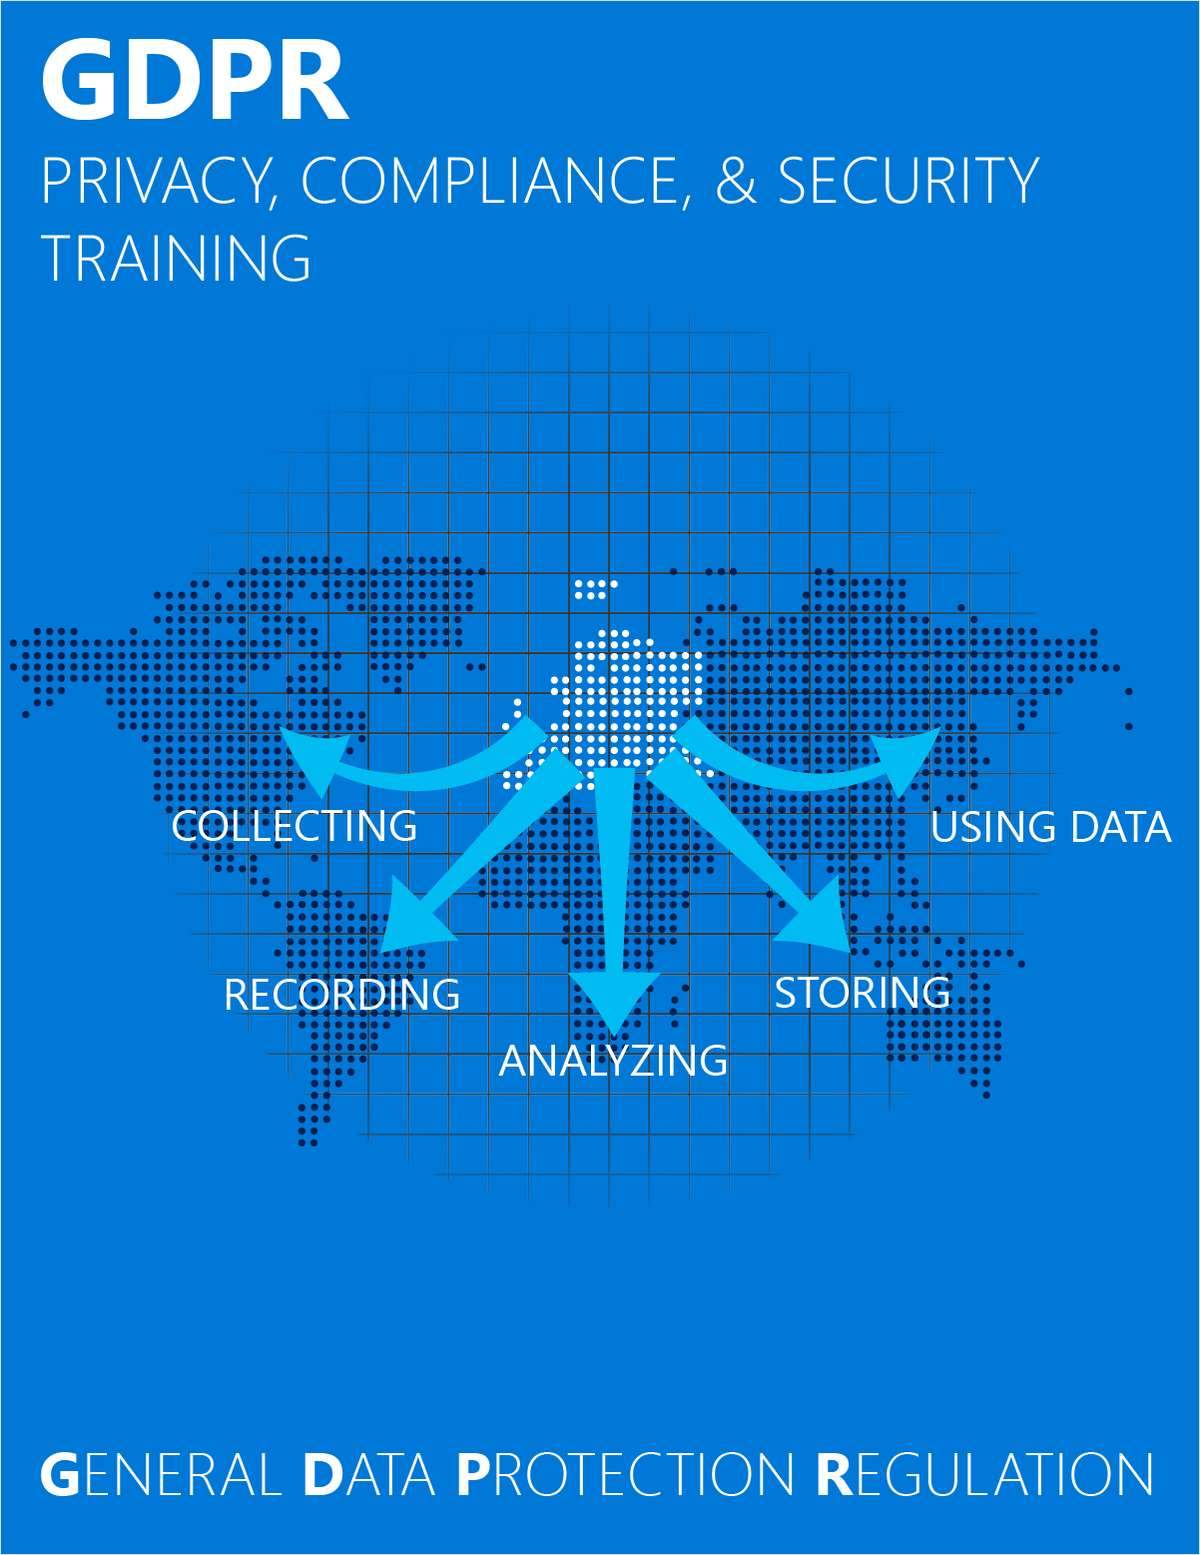 EU GDPR: Employee Awareness Training (Free Video Training Course) A $199 Value